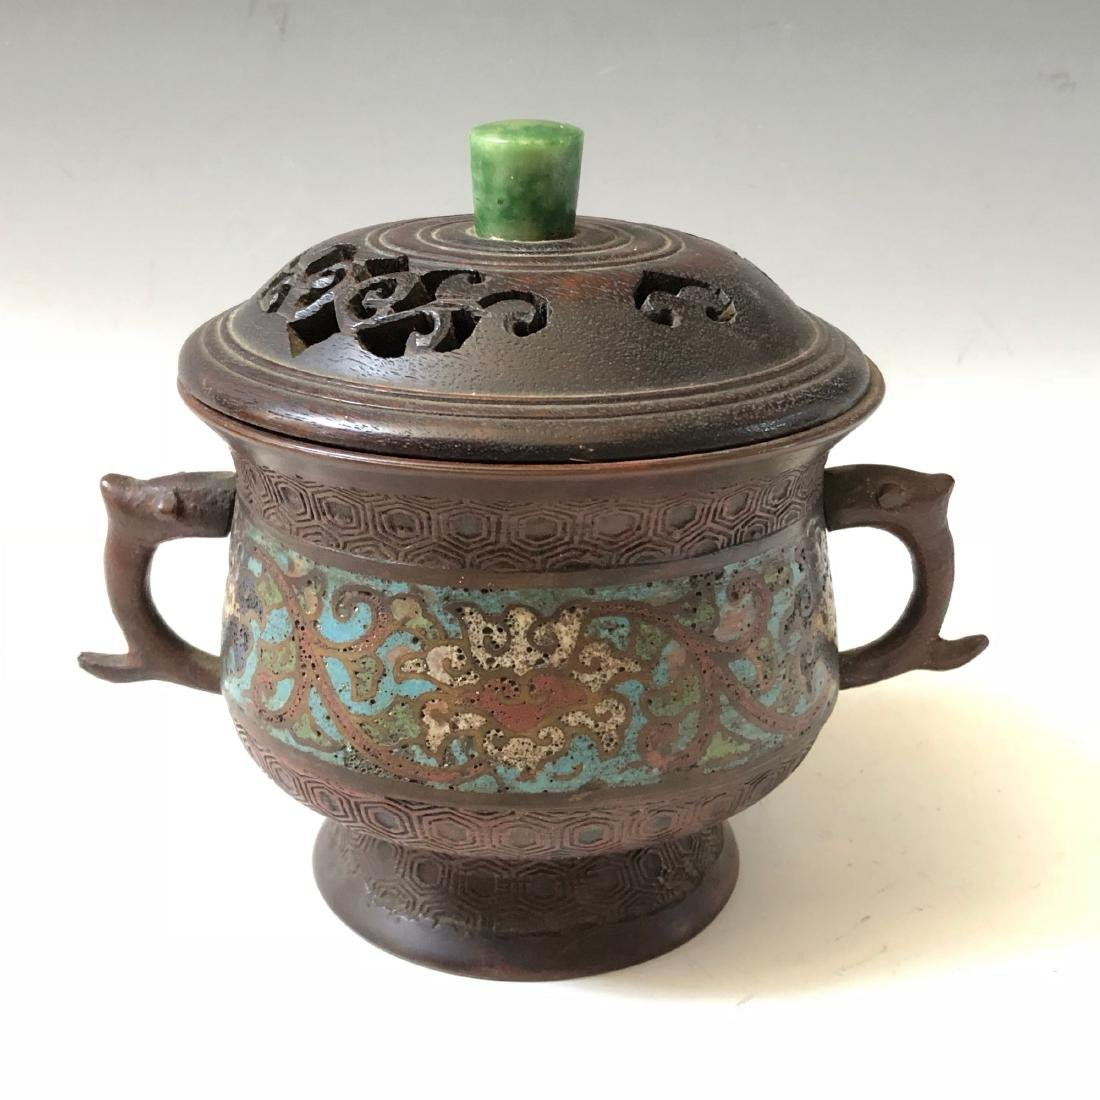 A CHINESE ANTIQUE ENAMEL CENSER